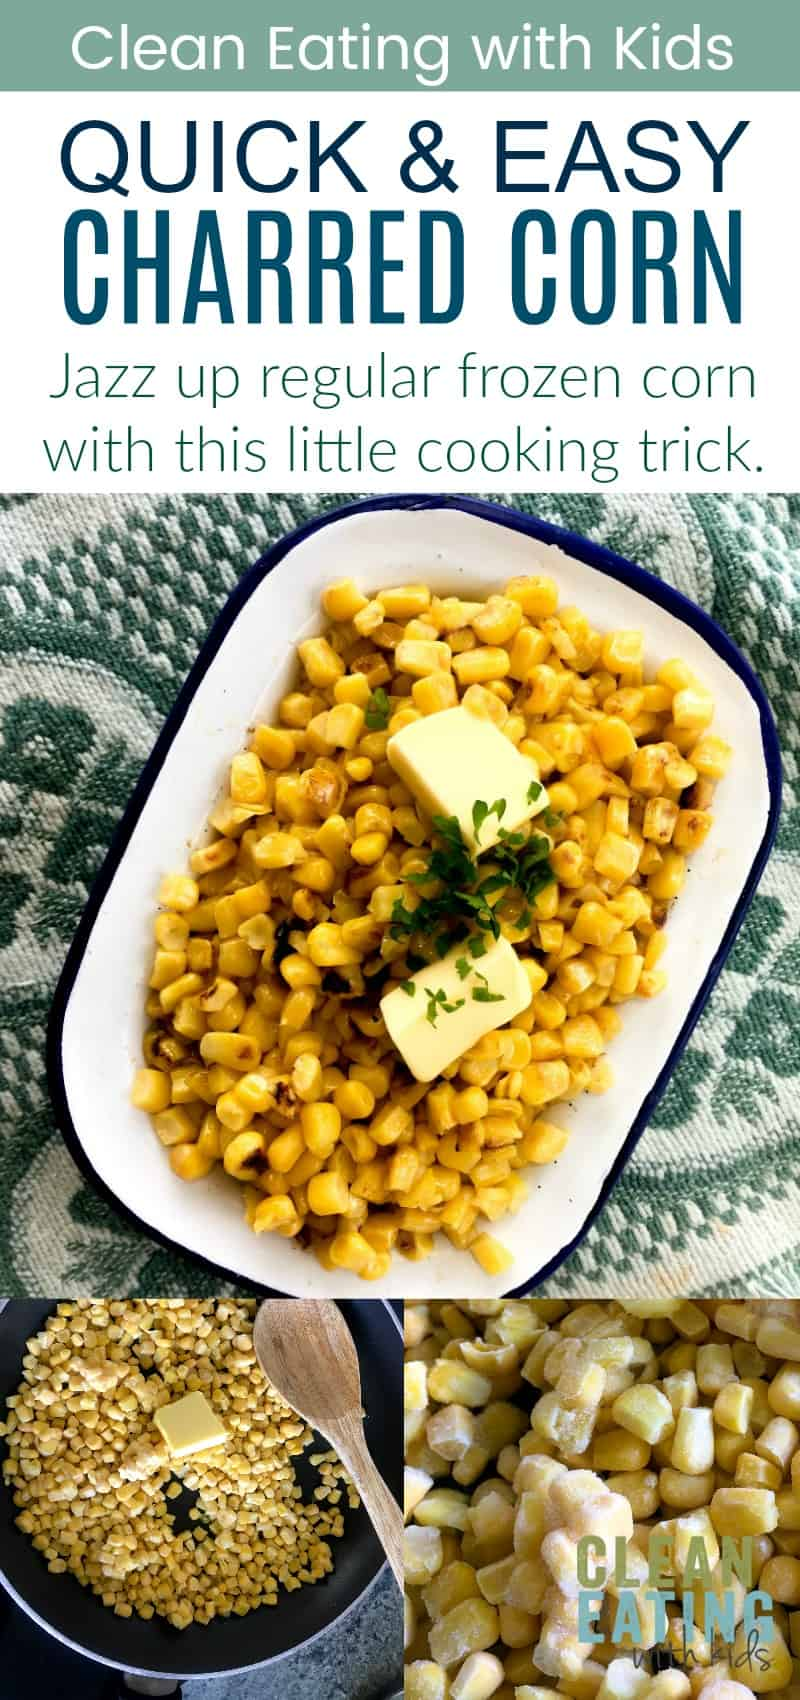 Clean Eating Charred Corn. Jazz up regular ol' frozen corn with this little cooking trick.